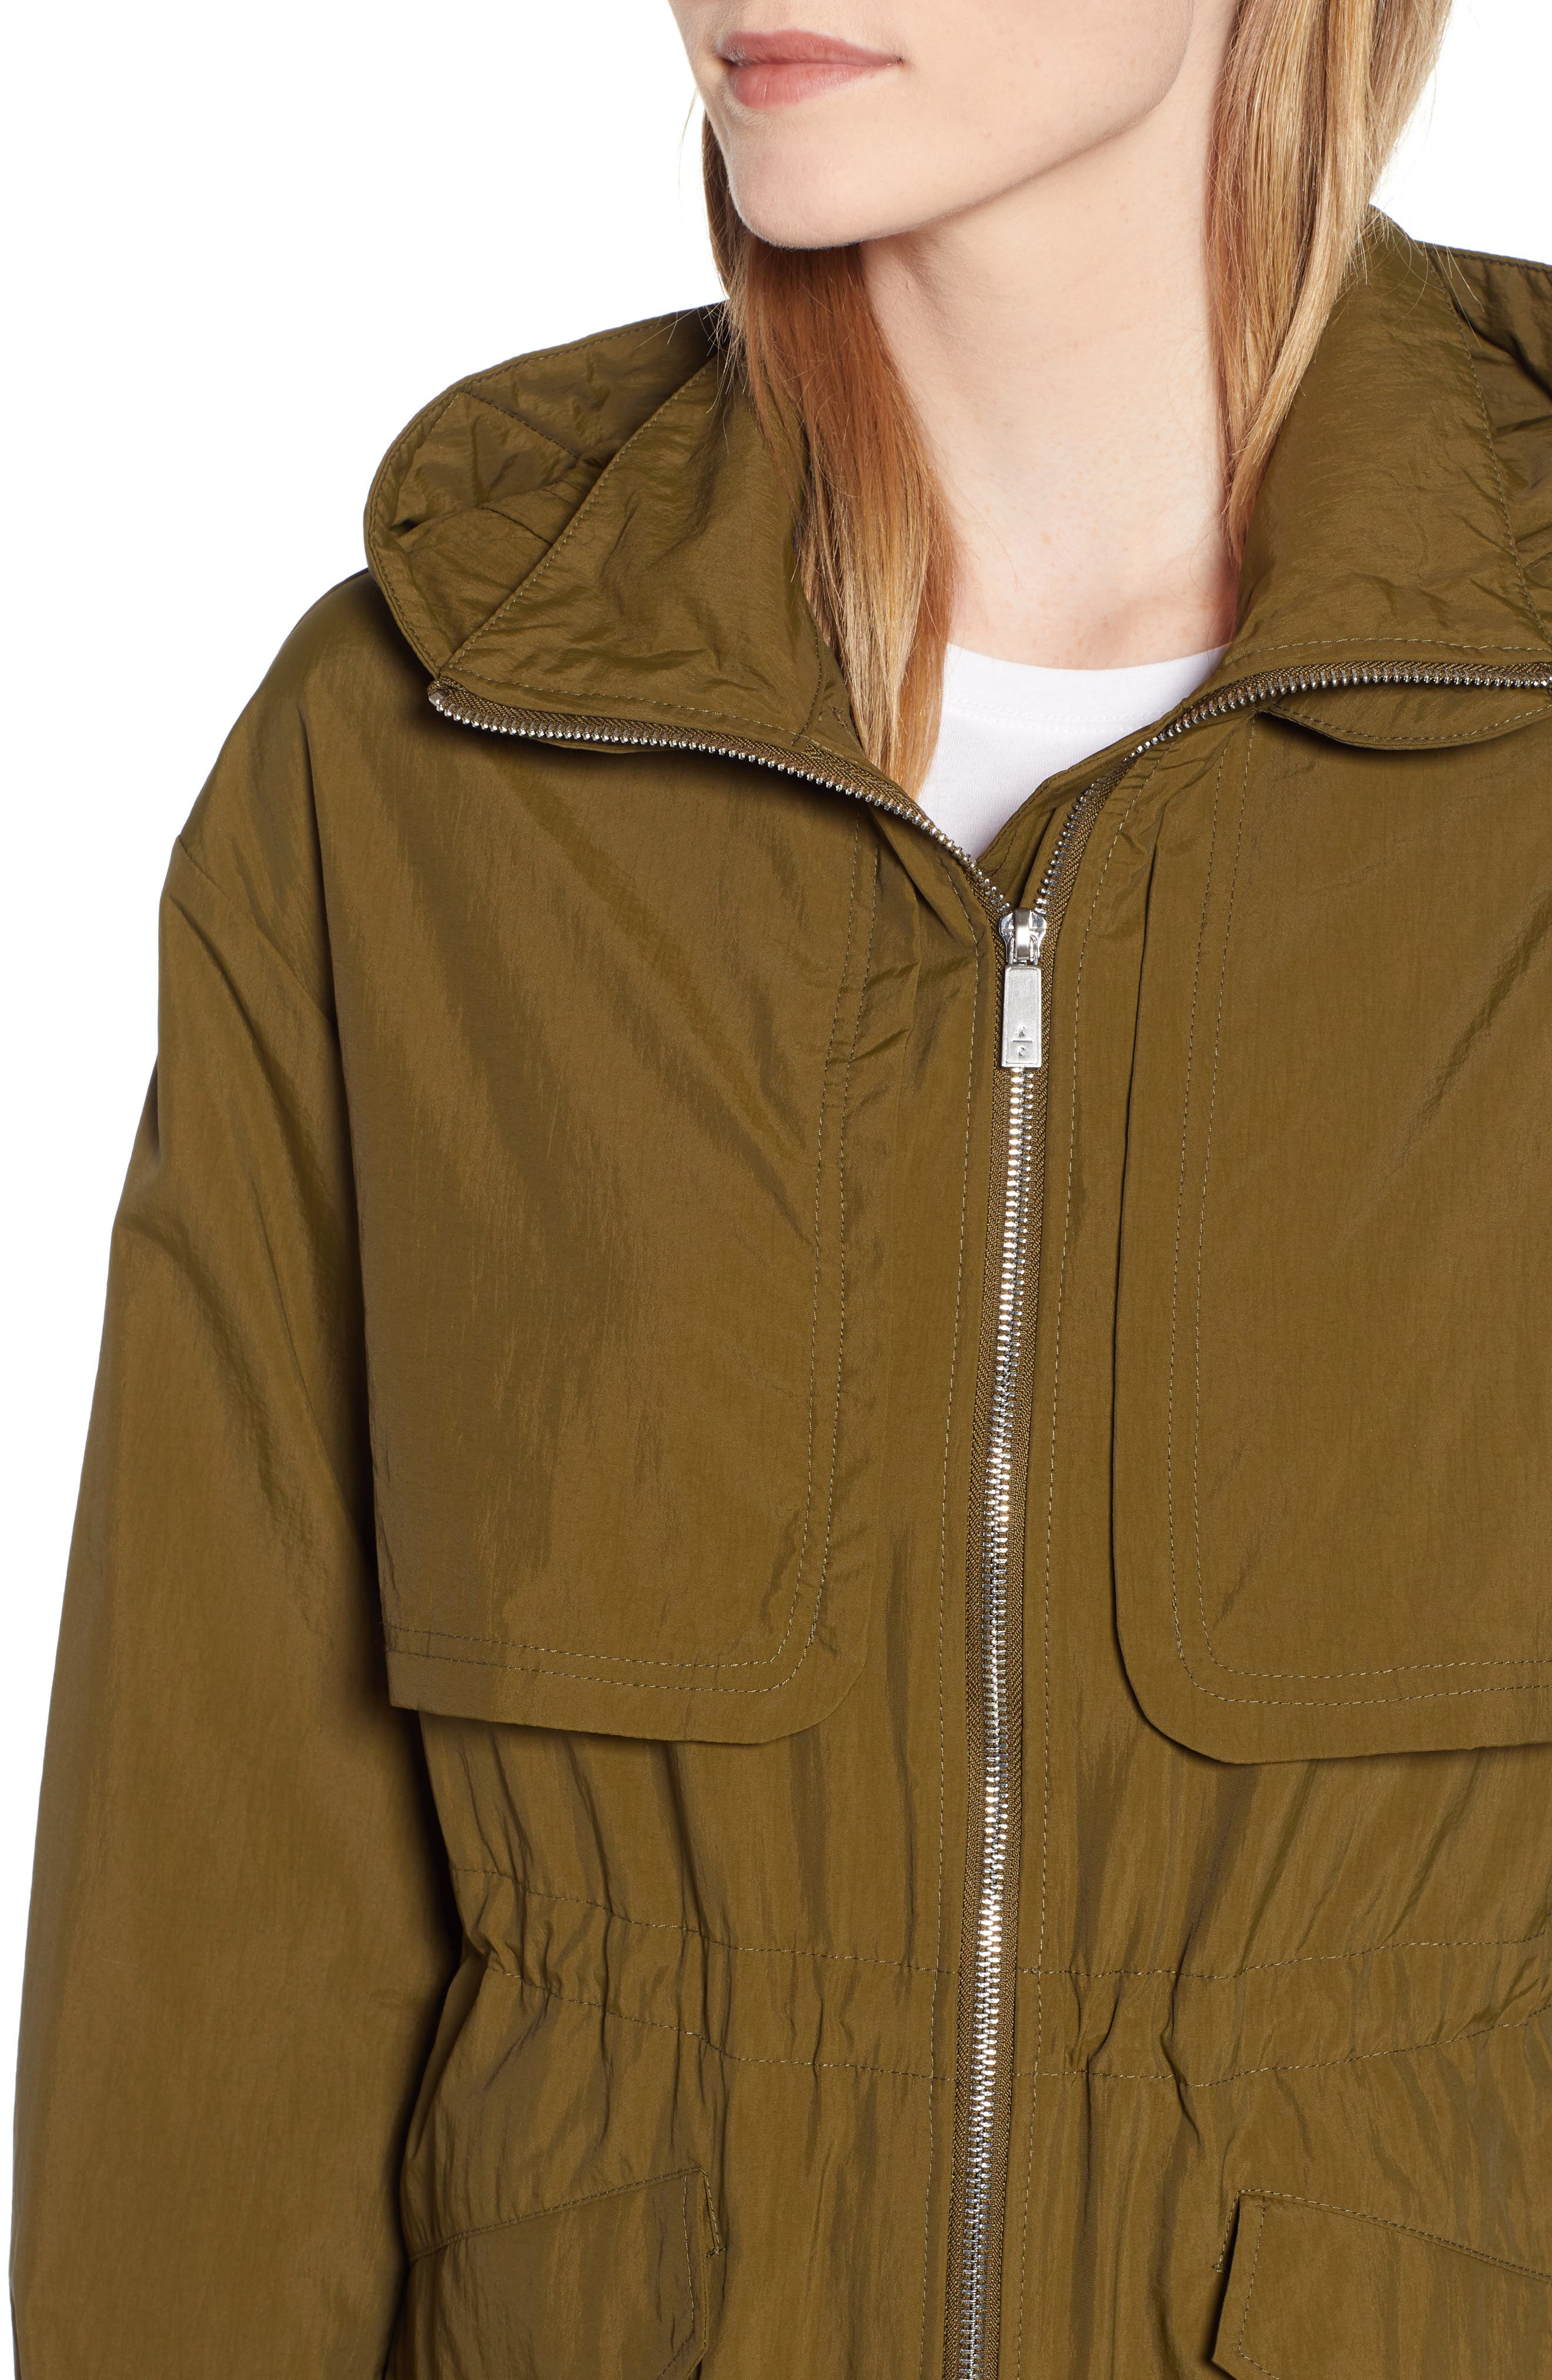 KENNETH COLE NEW YORK, Hooded Parka, Alternate thumbnail 5, color, OLIVE